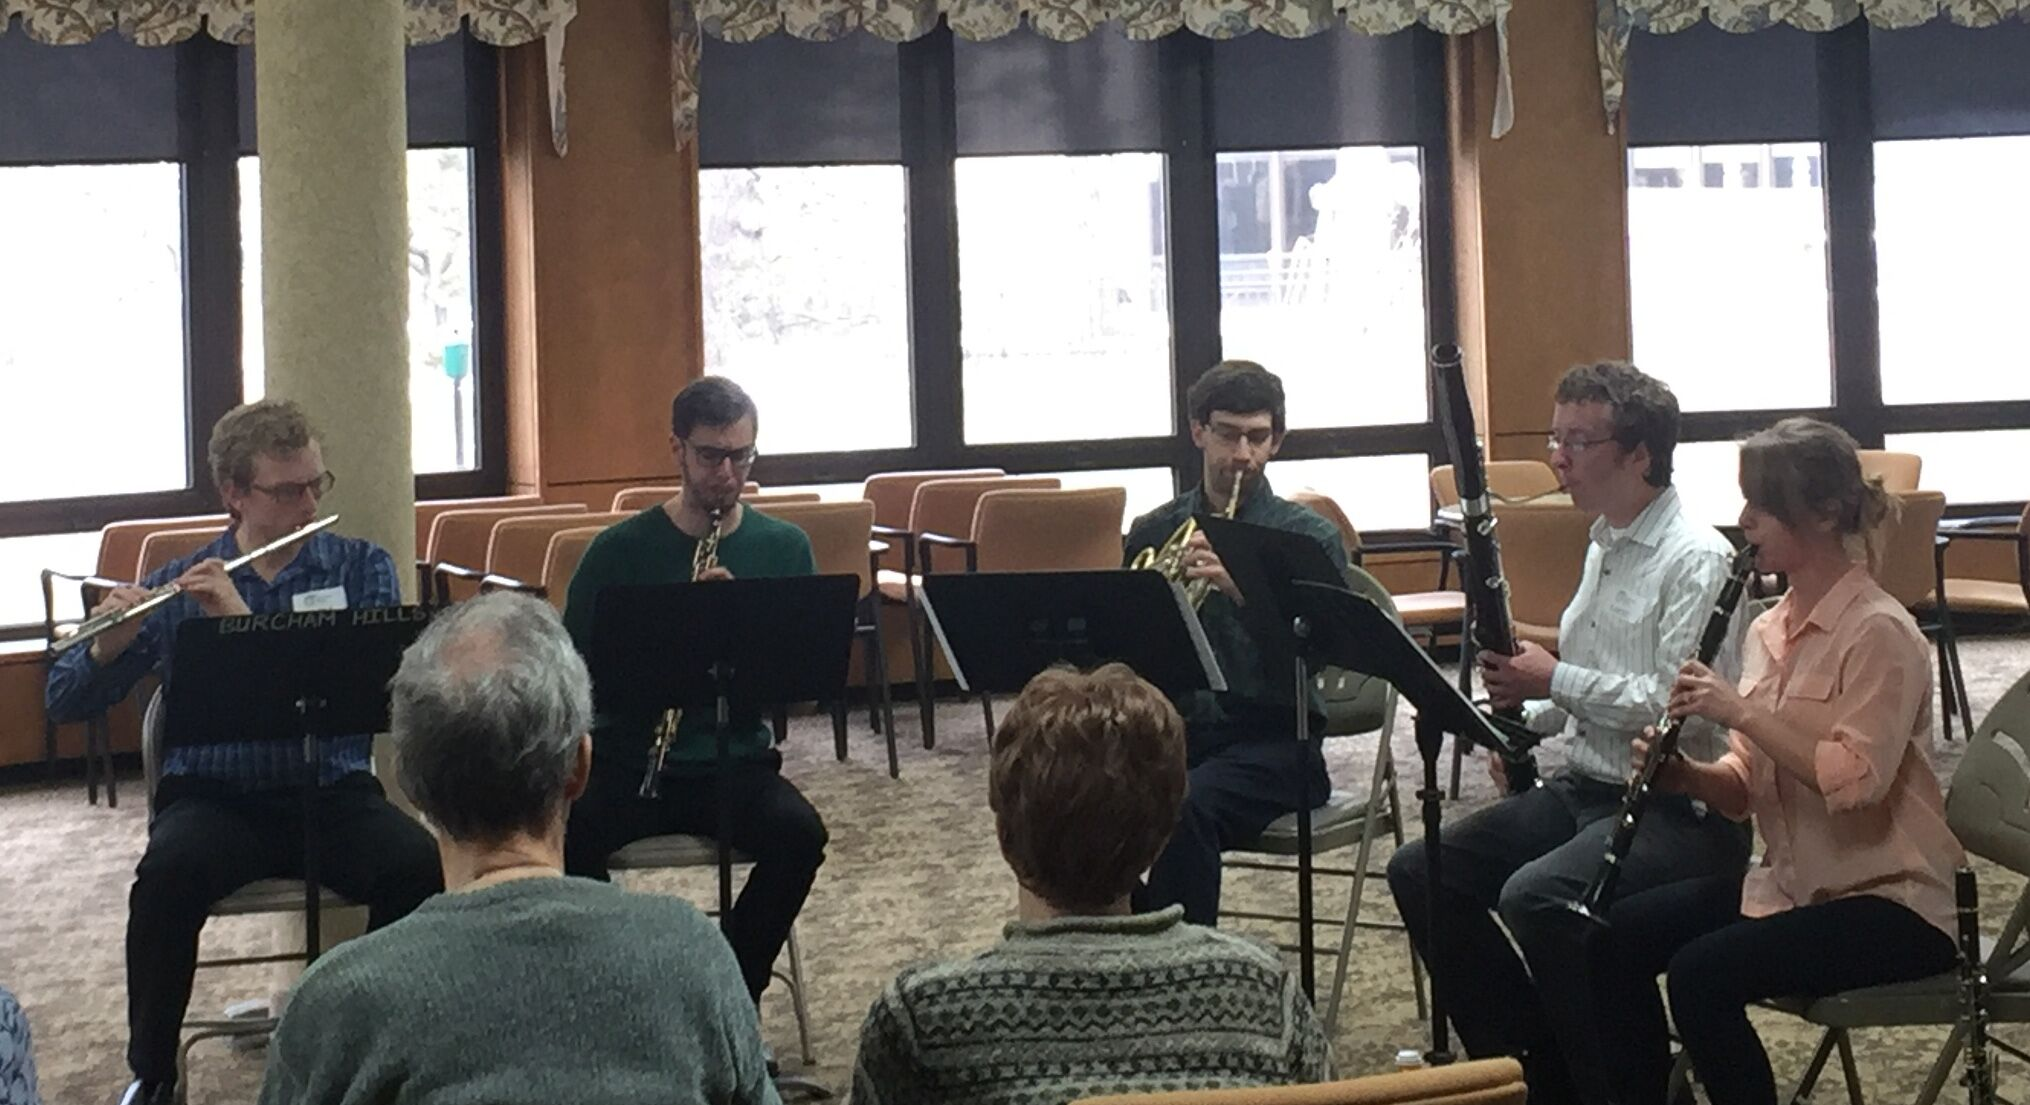 Members of the Verdant Winds woodwind quintet perform for Burcham Hills residents. image